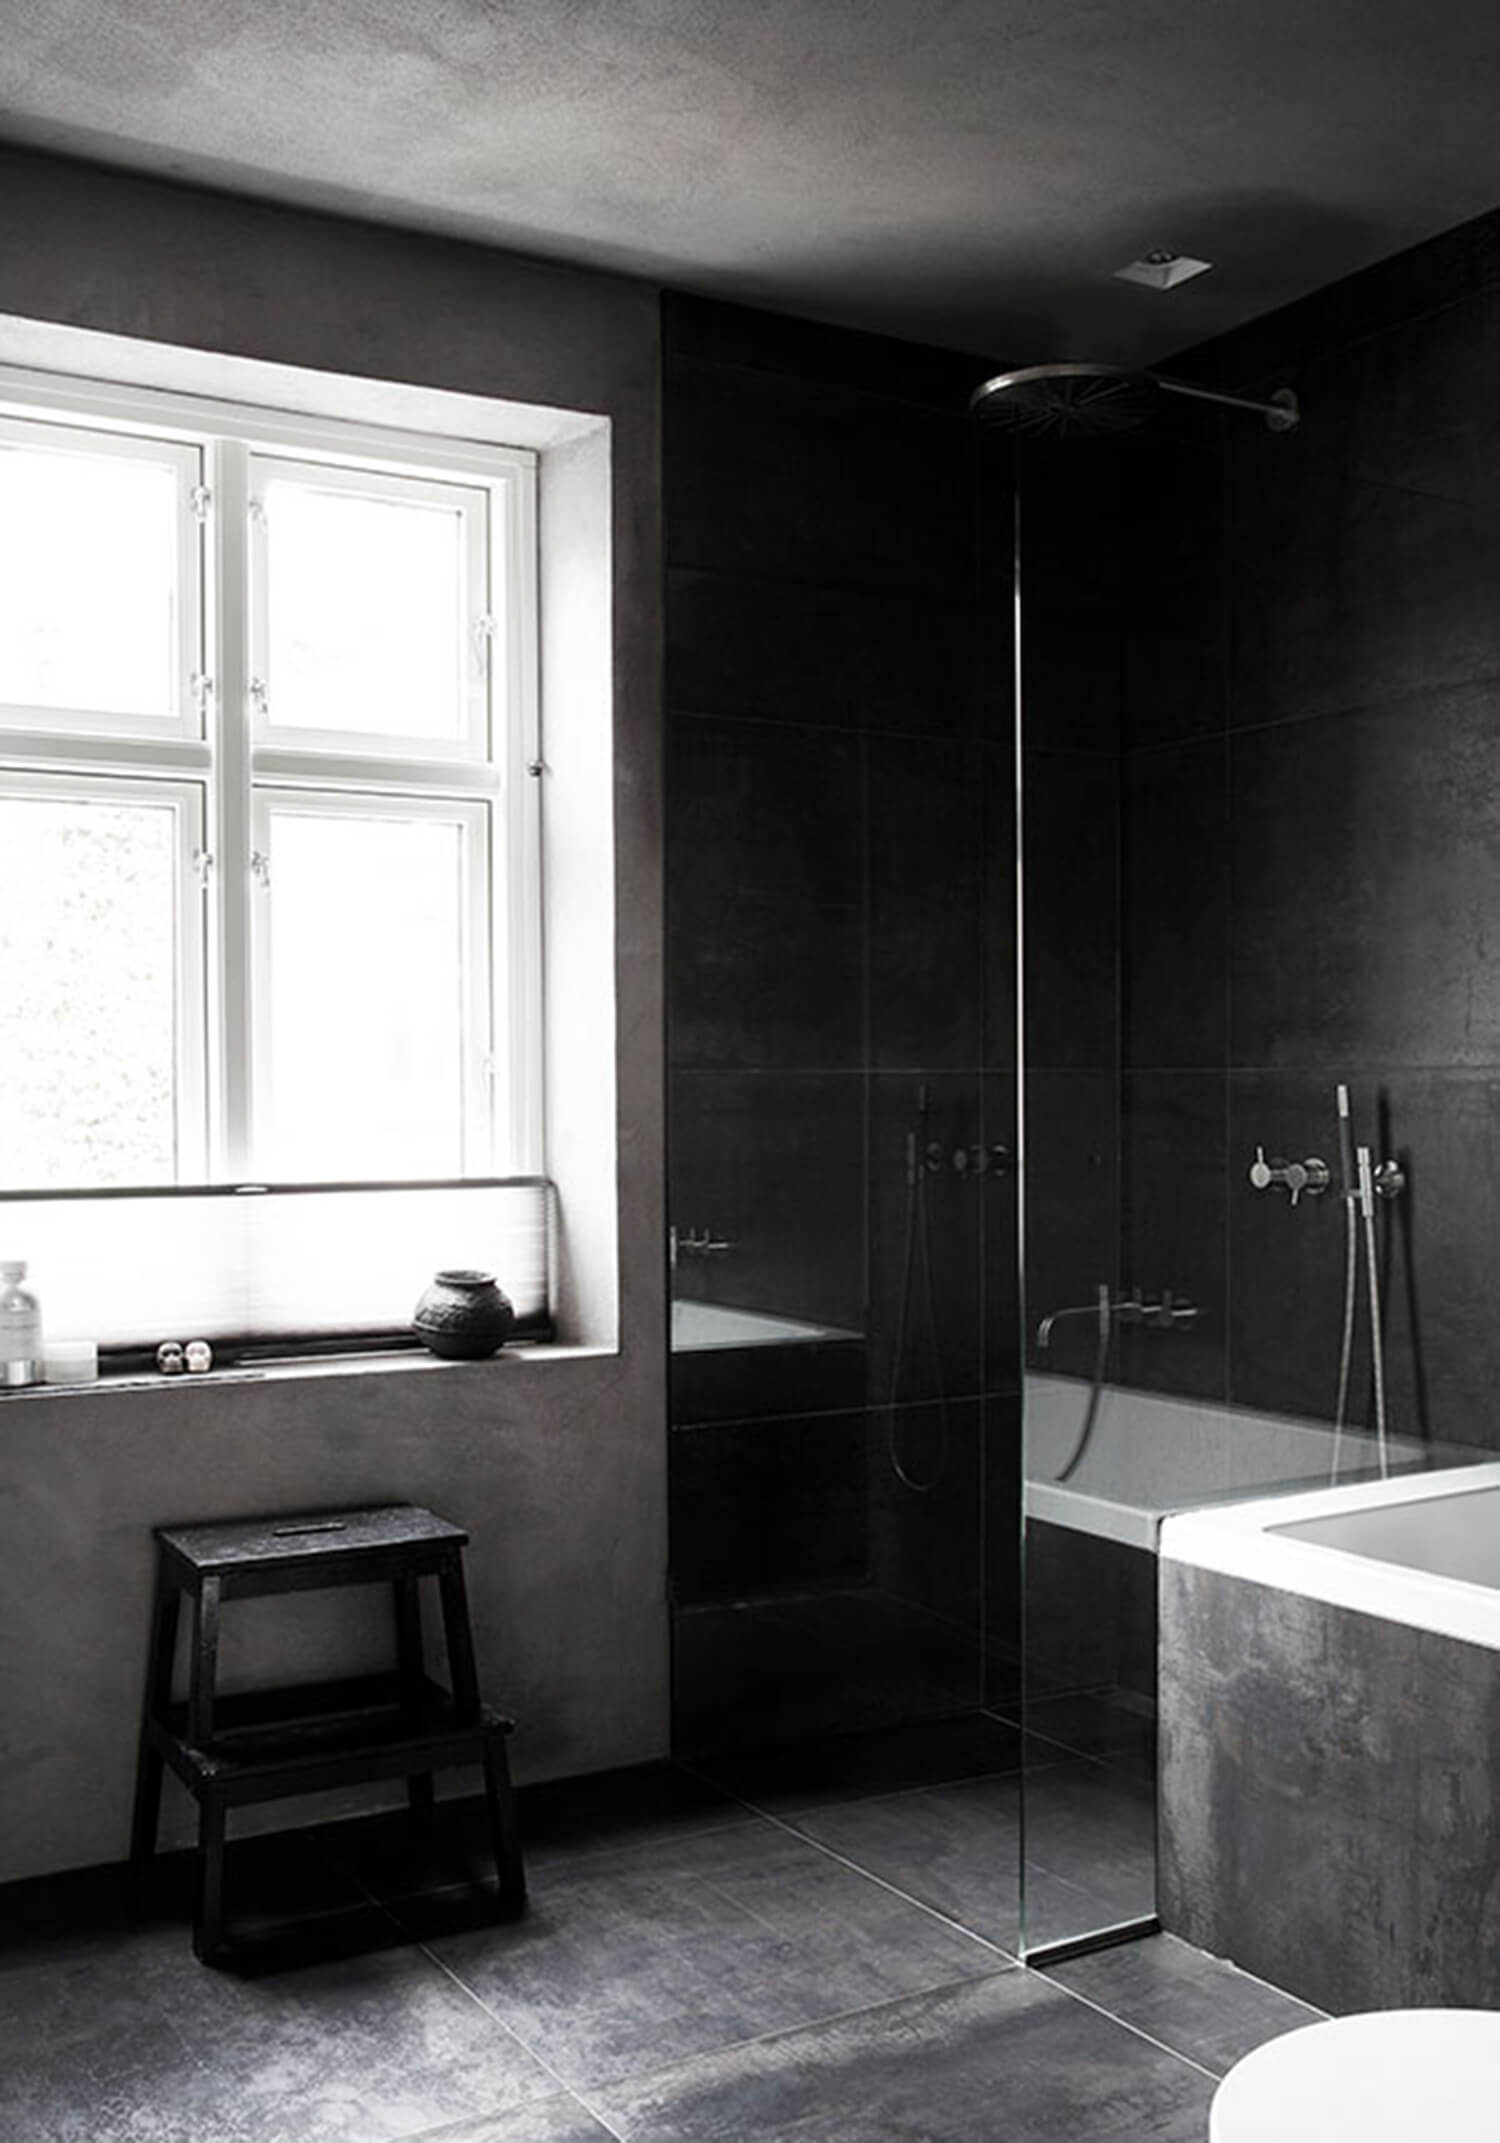 est living norm architects copenhagen townhouse shower.01